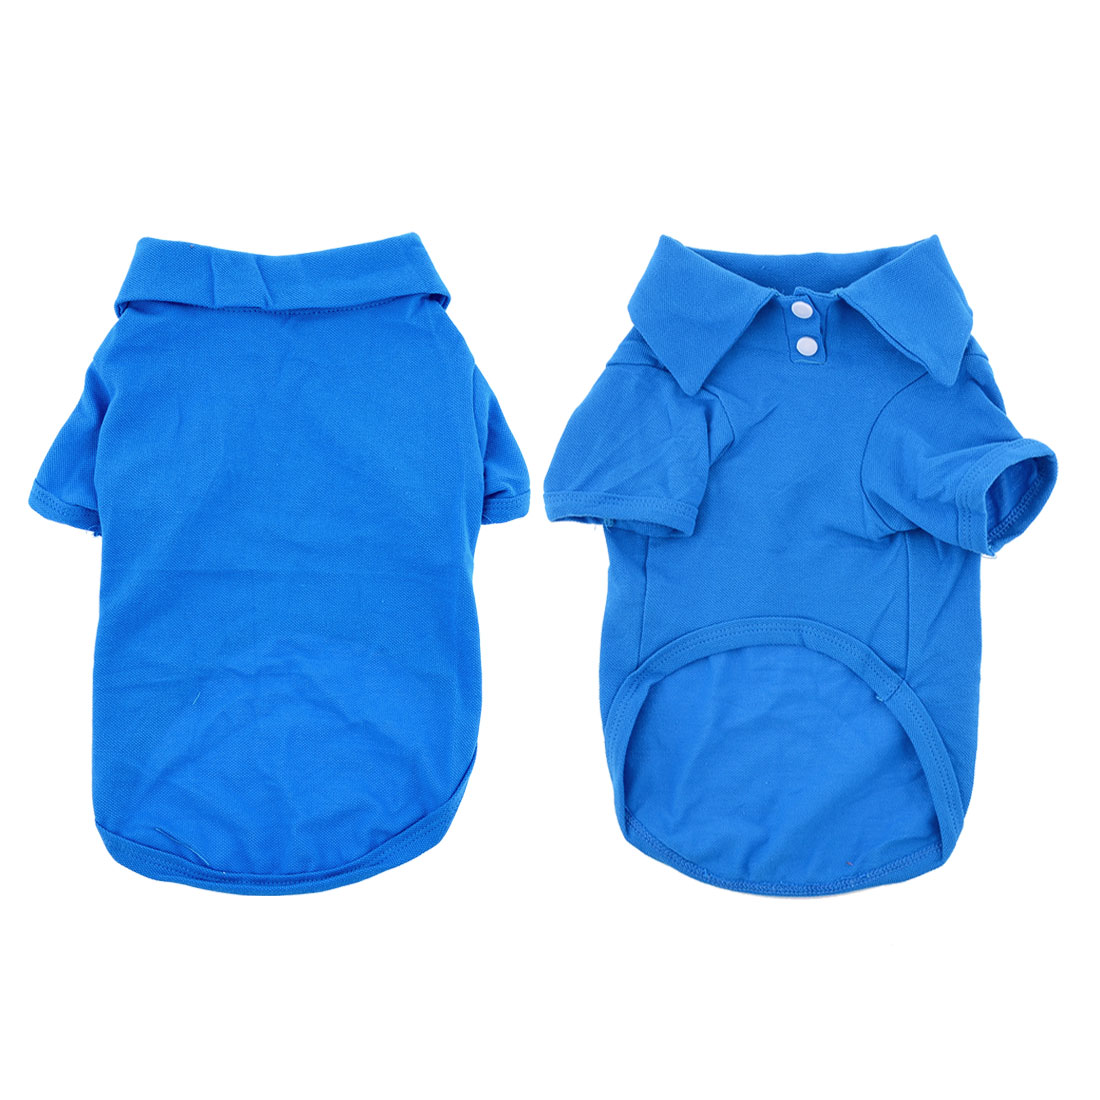 Doggy Dog Pet Clothing Summer Short Sleeves Shirt Royal Blue M